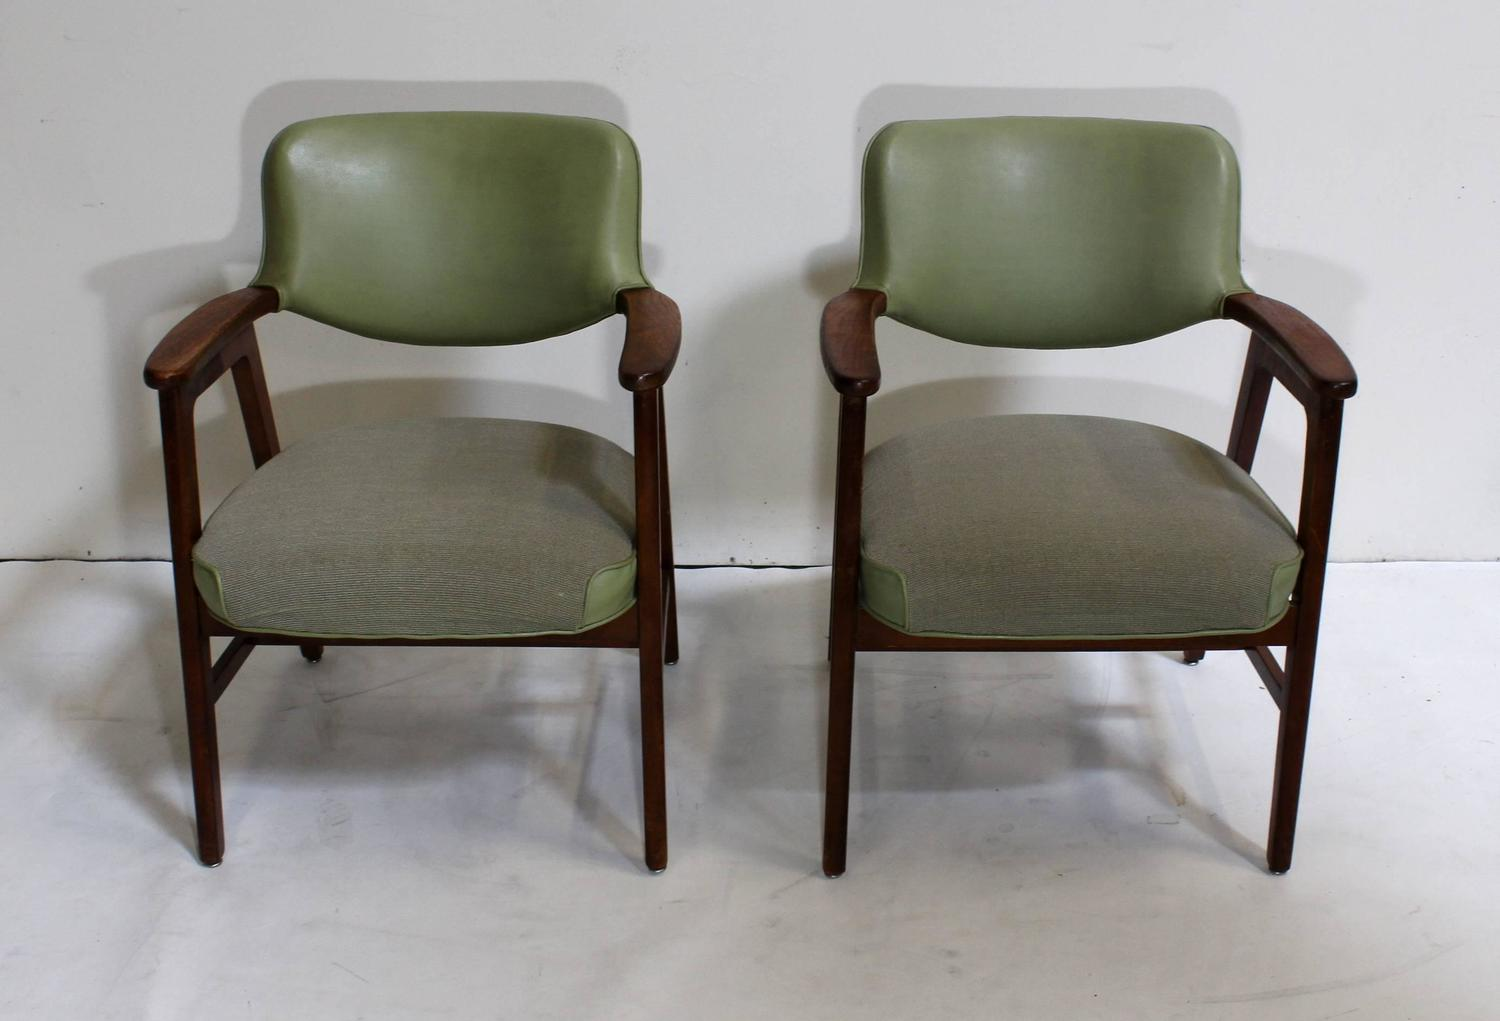 Pair of Mid Century Modern Green Club Lounge Chairs at 1stdibs